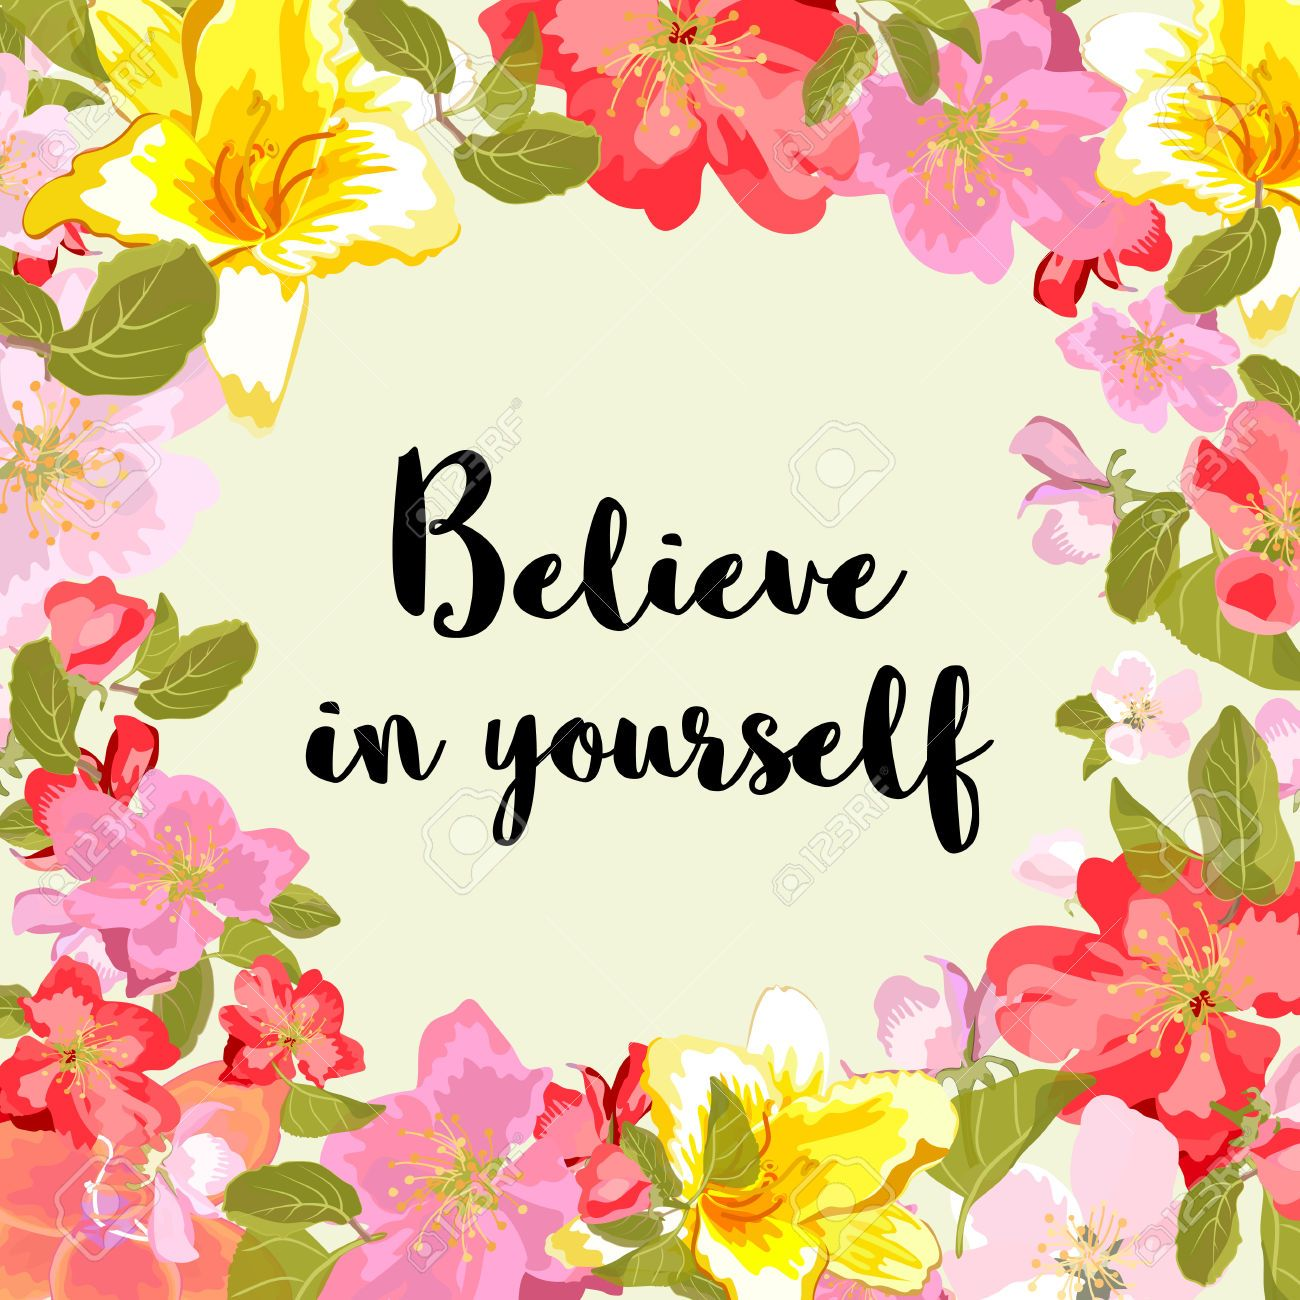 Floral Positive Motivational Quotes: 53864860-Believe-in-yourself-motivational-quote-typography